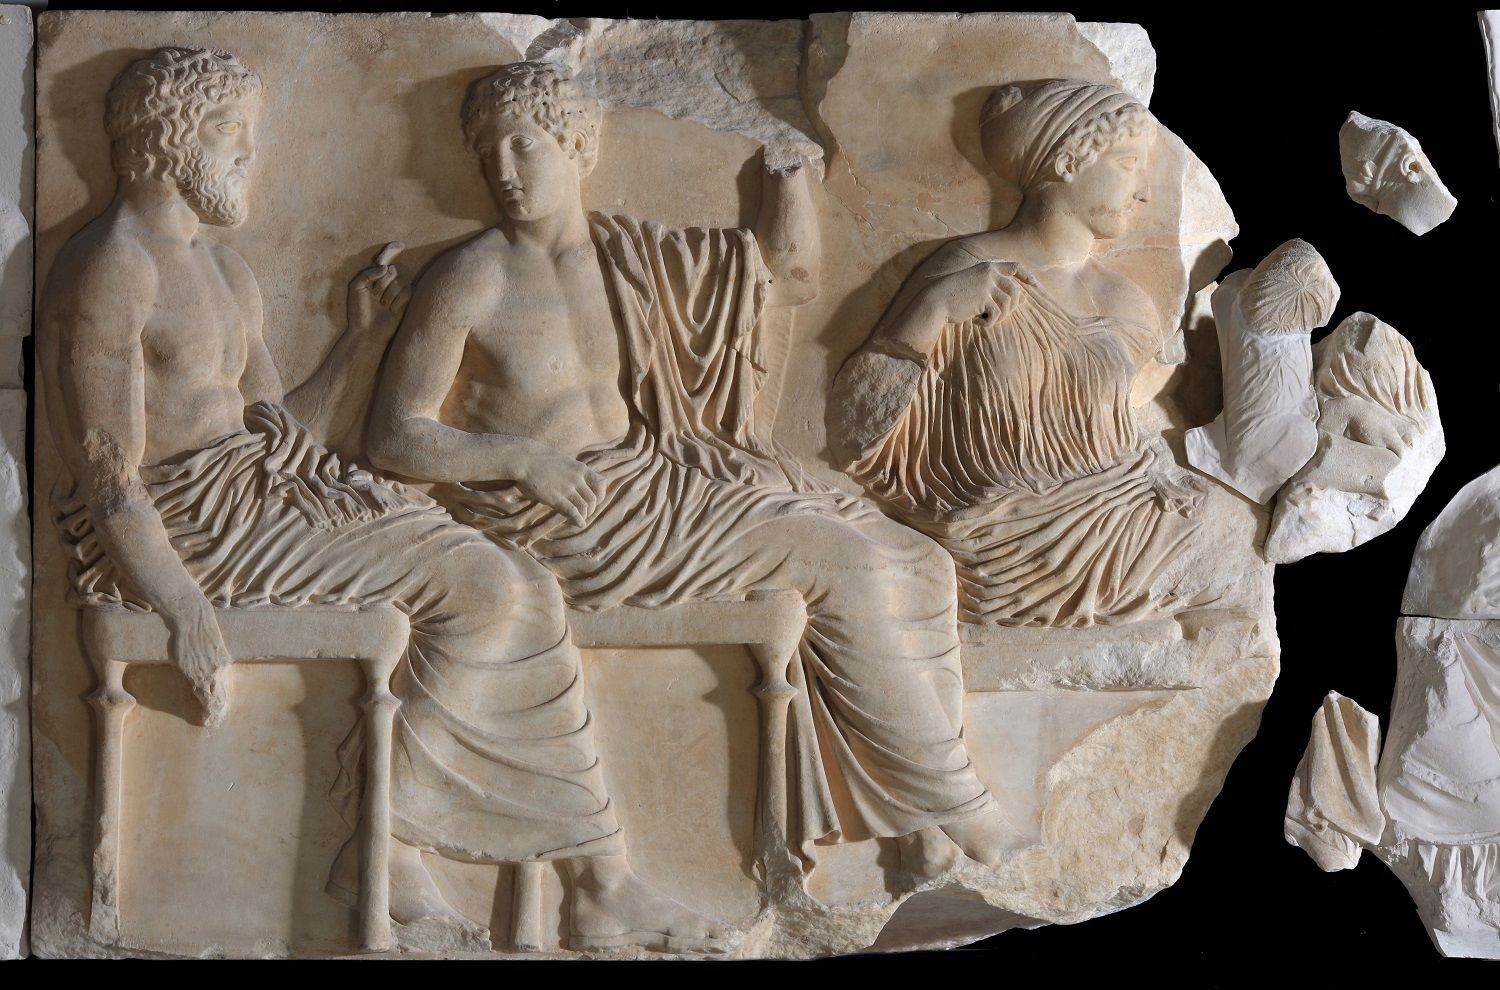 Skip-the-Line Private Athens Tour with Acropolis Museum